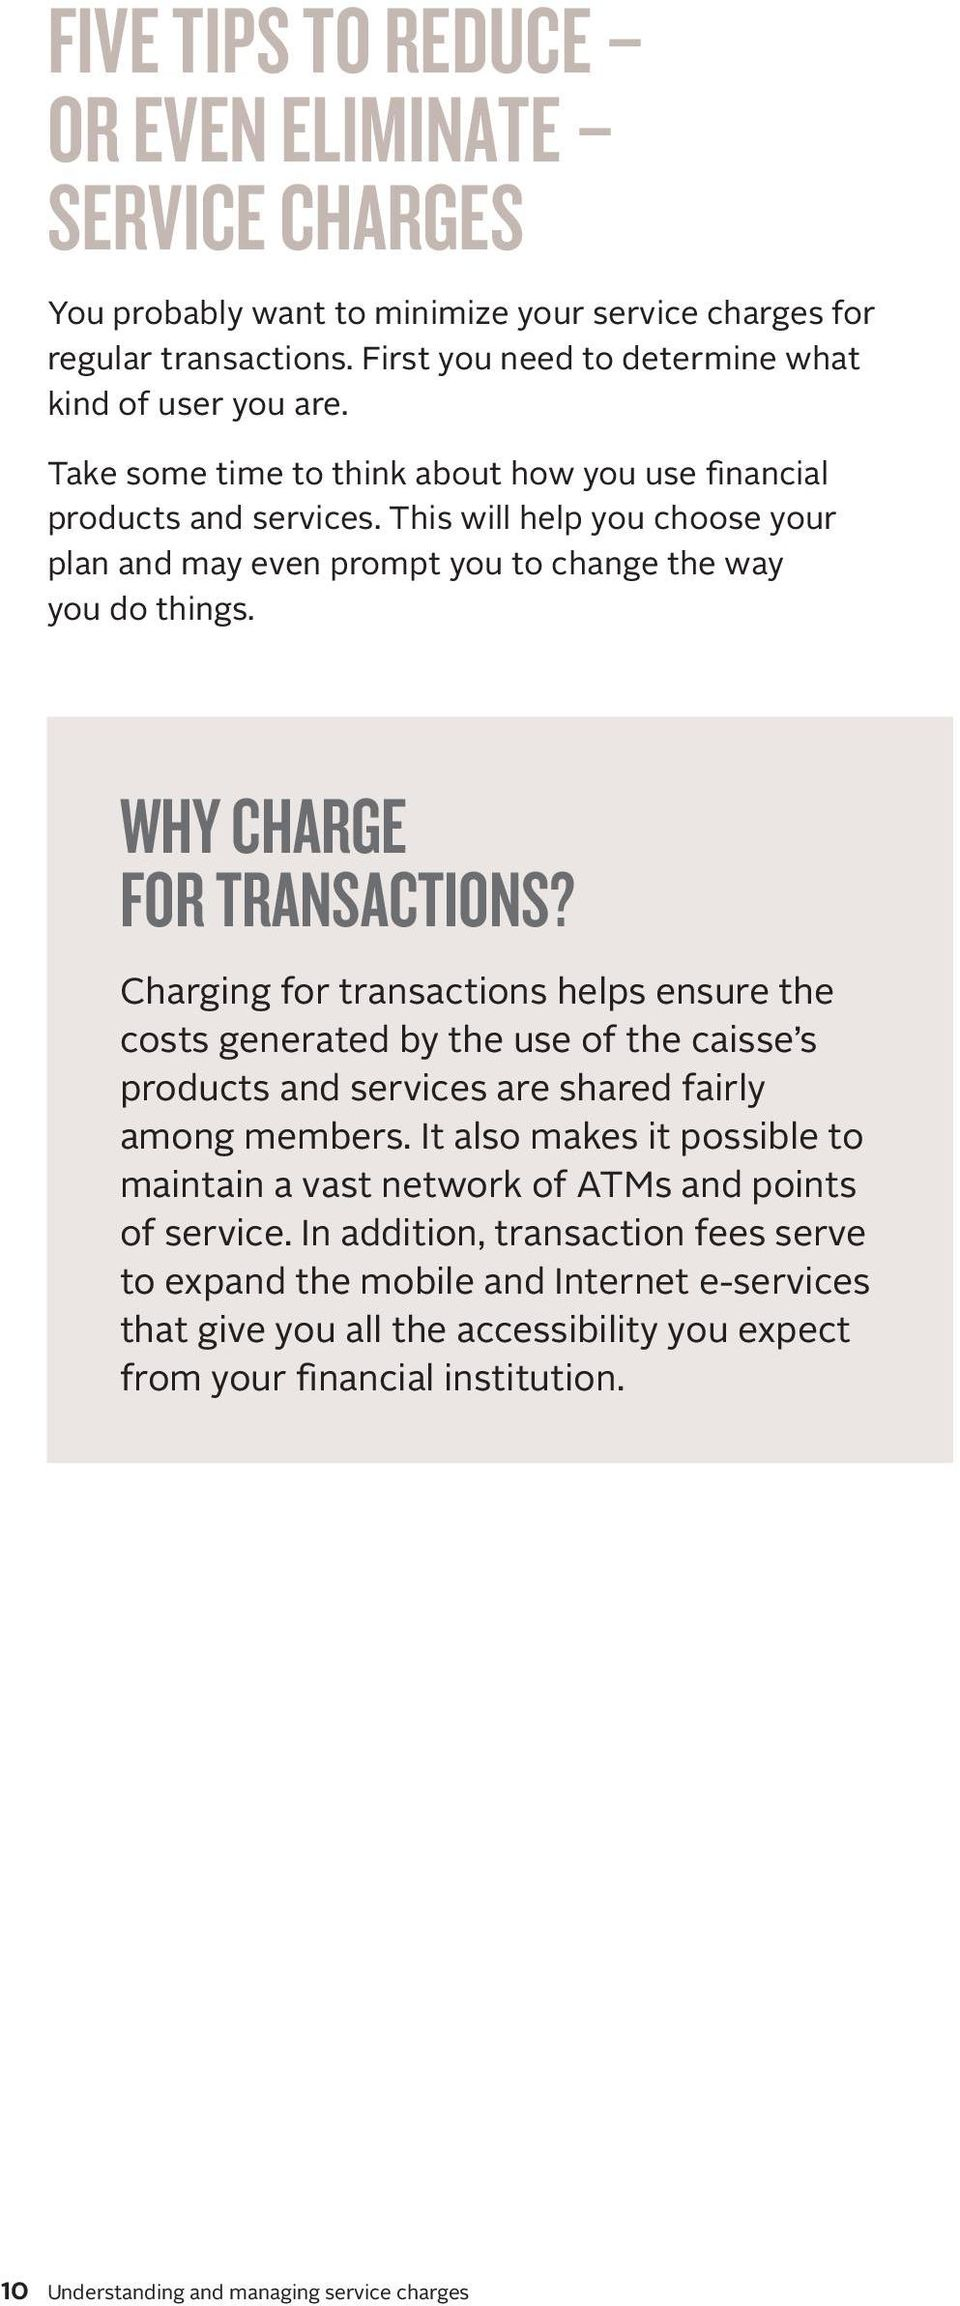 Charging for transactions helps ensure the costs generated by the use of the caisse s products and services are shared fairly among members.